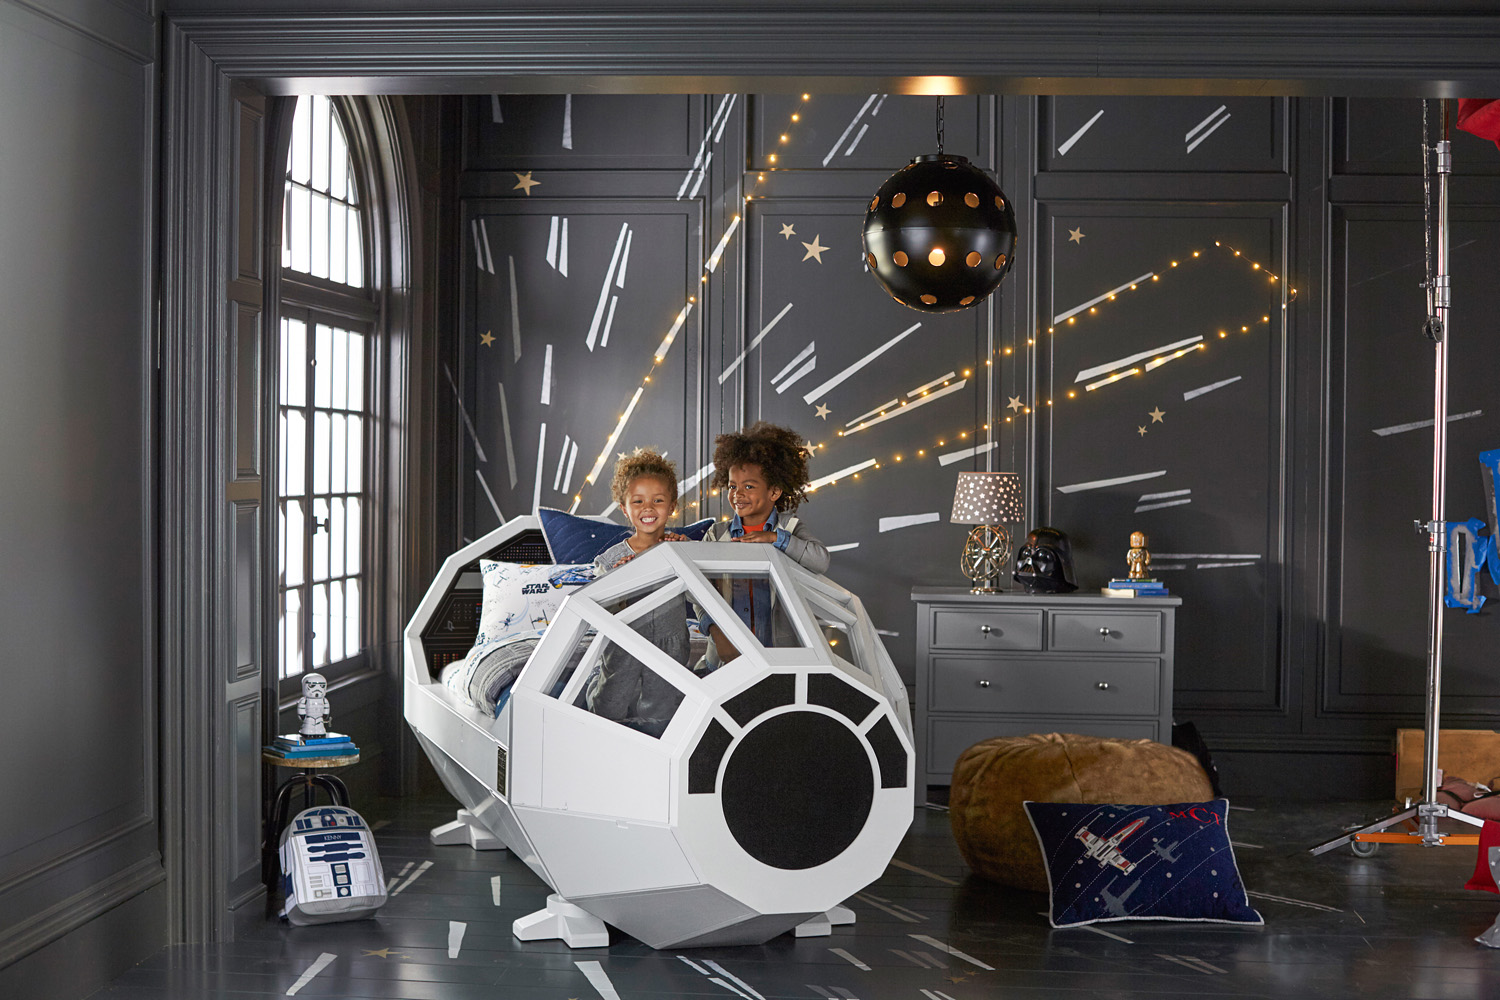 Star Wars Bedroom Ideas Themes Pottery Barn Star Wars Collection Preview Starwars